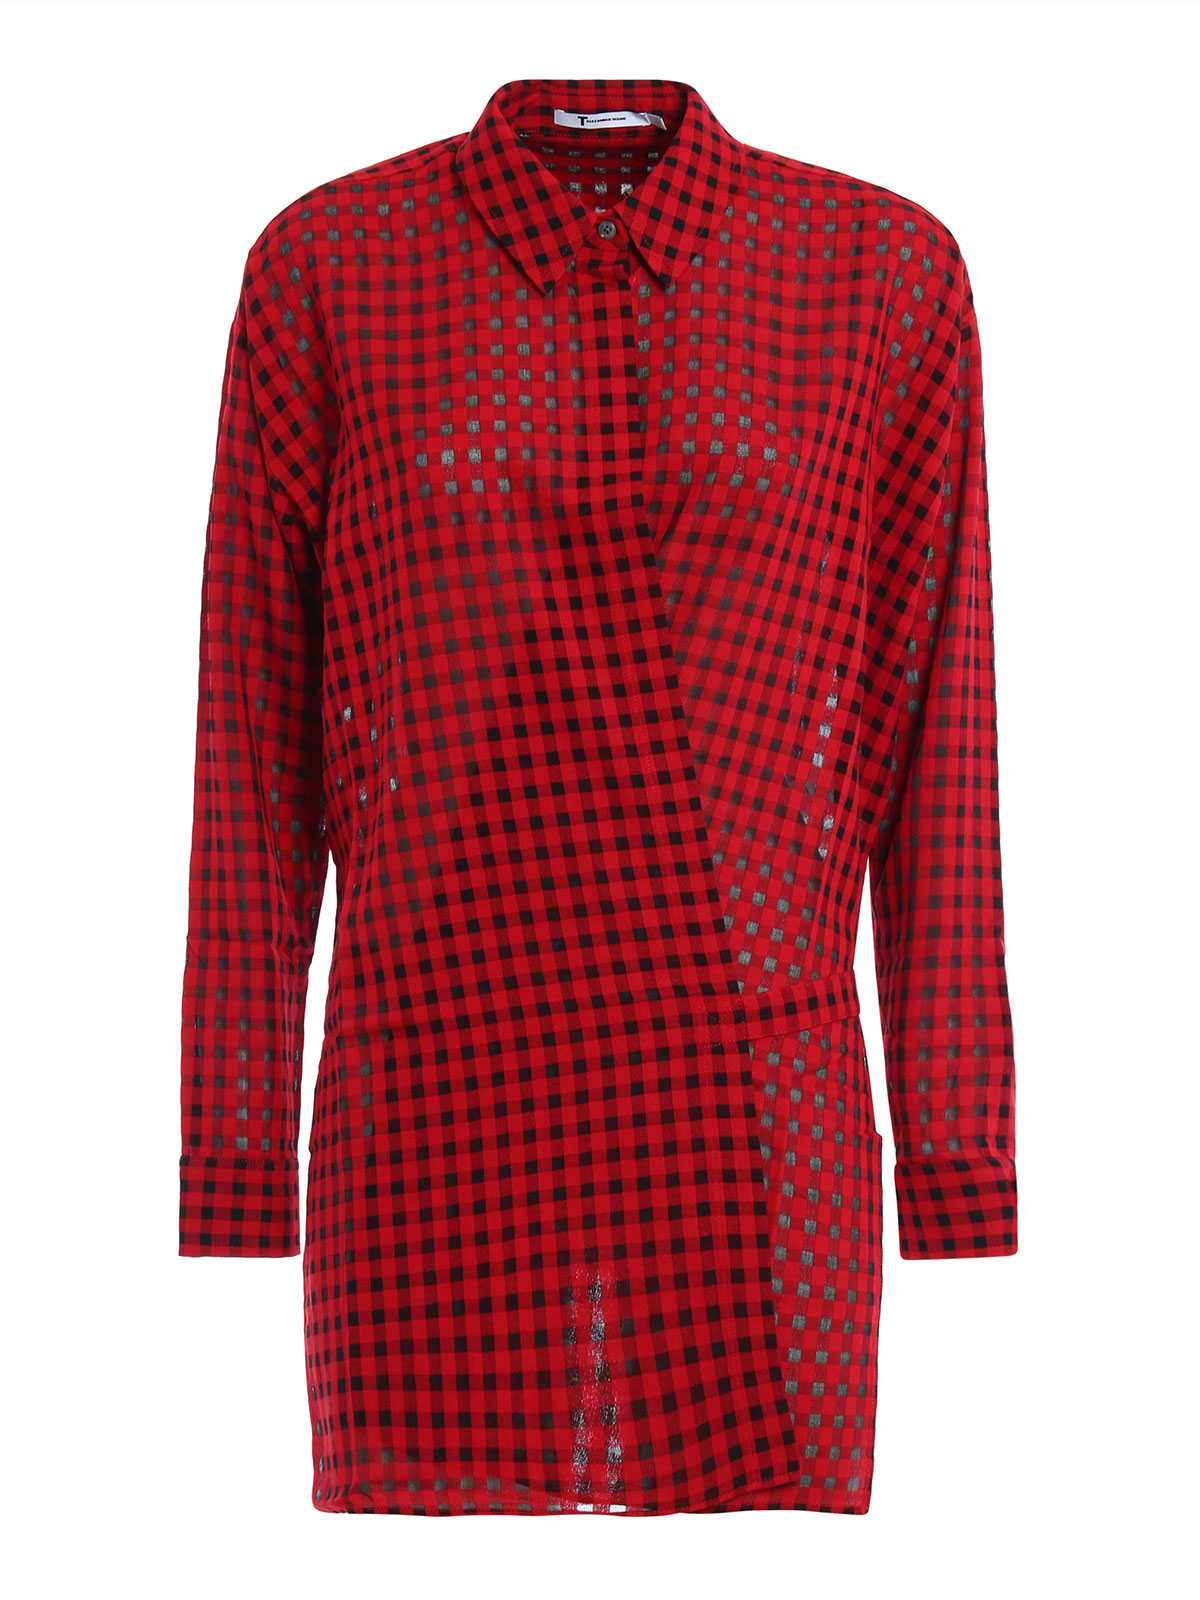 Checkered wrap shirt by t by alexander wang shirts ikrix for Alexander wang t shirts